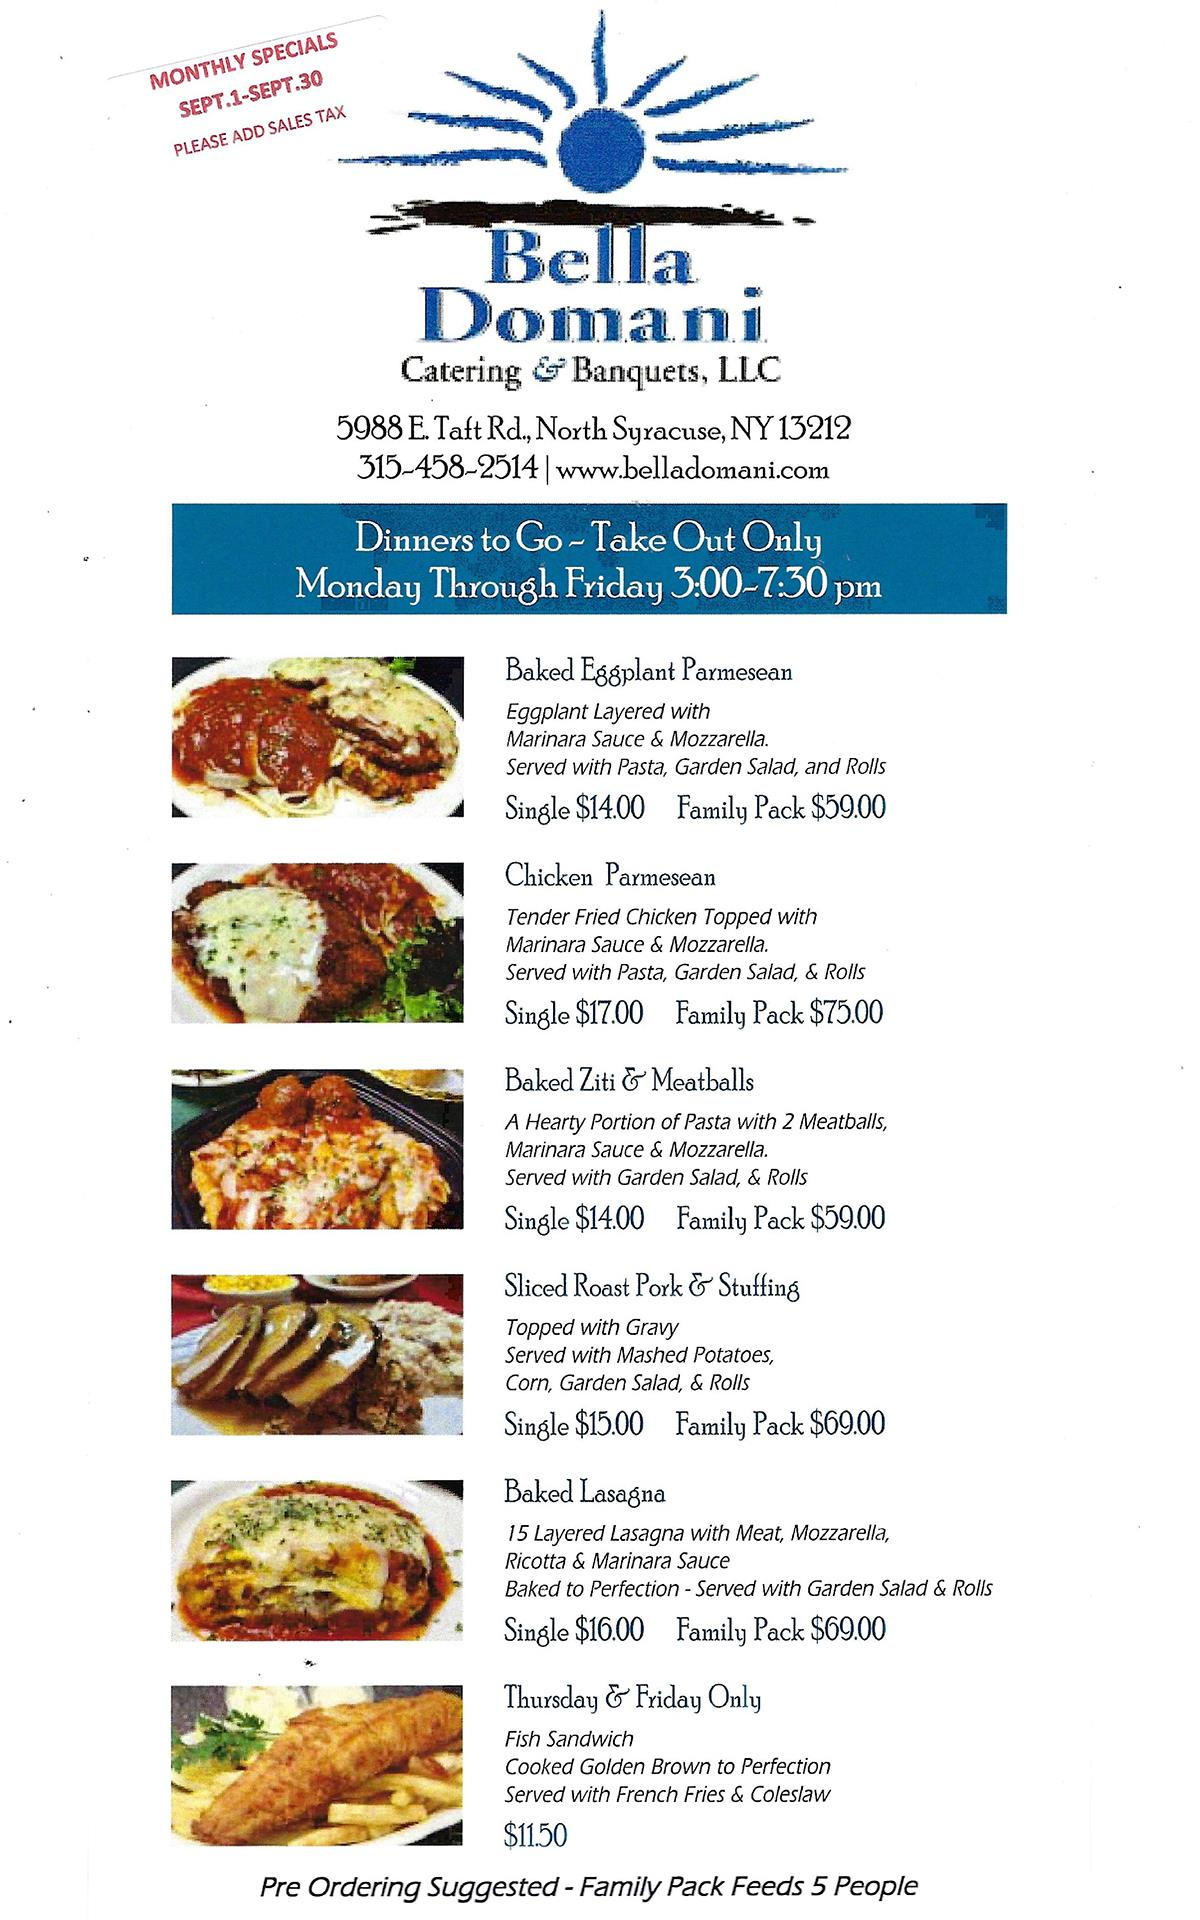 monthly specials september 1st through september 30th (please add sales tax). Dinners to go- take out only. Monday through Friday 3:00- 7:30 PM. Baked eggplan parmesan- eggplant layered with marinara sauce and mozzarella, served with pasta, garden salad, and rolls, single $14 plus tax or family pack $59 plus tax. Chicken parmesan- tender fried chicken topped with marinara sauce and mozzarella, served with pasta, garden salad, and rolls, single $17 plus tax or family pack $75 plus tax. Baked ziti & meatballs- a hearty portion of pasta with 2 meatballs, marinara sauce and mozzarella, served with pasta, garden salad, and rolls, single $14 plus tax or family pack $59 plus tax. Sliced roast pork & stuffing topped with gravy served with mashed potatoes, corn, garden salad, and rolls, single $15 plus tax or family pack $69 plus tax. Baked lasagna- 15 layered lasagna with meat, mozzarella, ricotta and marinara sauce, baked to perfection, served with garden salad and rolls, single $16 plus tax or family pack $69 plus tax. Thursday and Friday only- fish sandwich cooked golden brown to perfection, served with French fries and cole slaw for $11.50 plus tax. Per ordering suggest- family pack feeds 5 people.